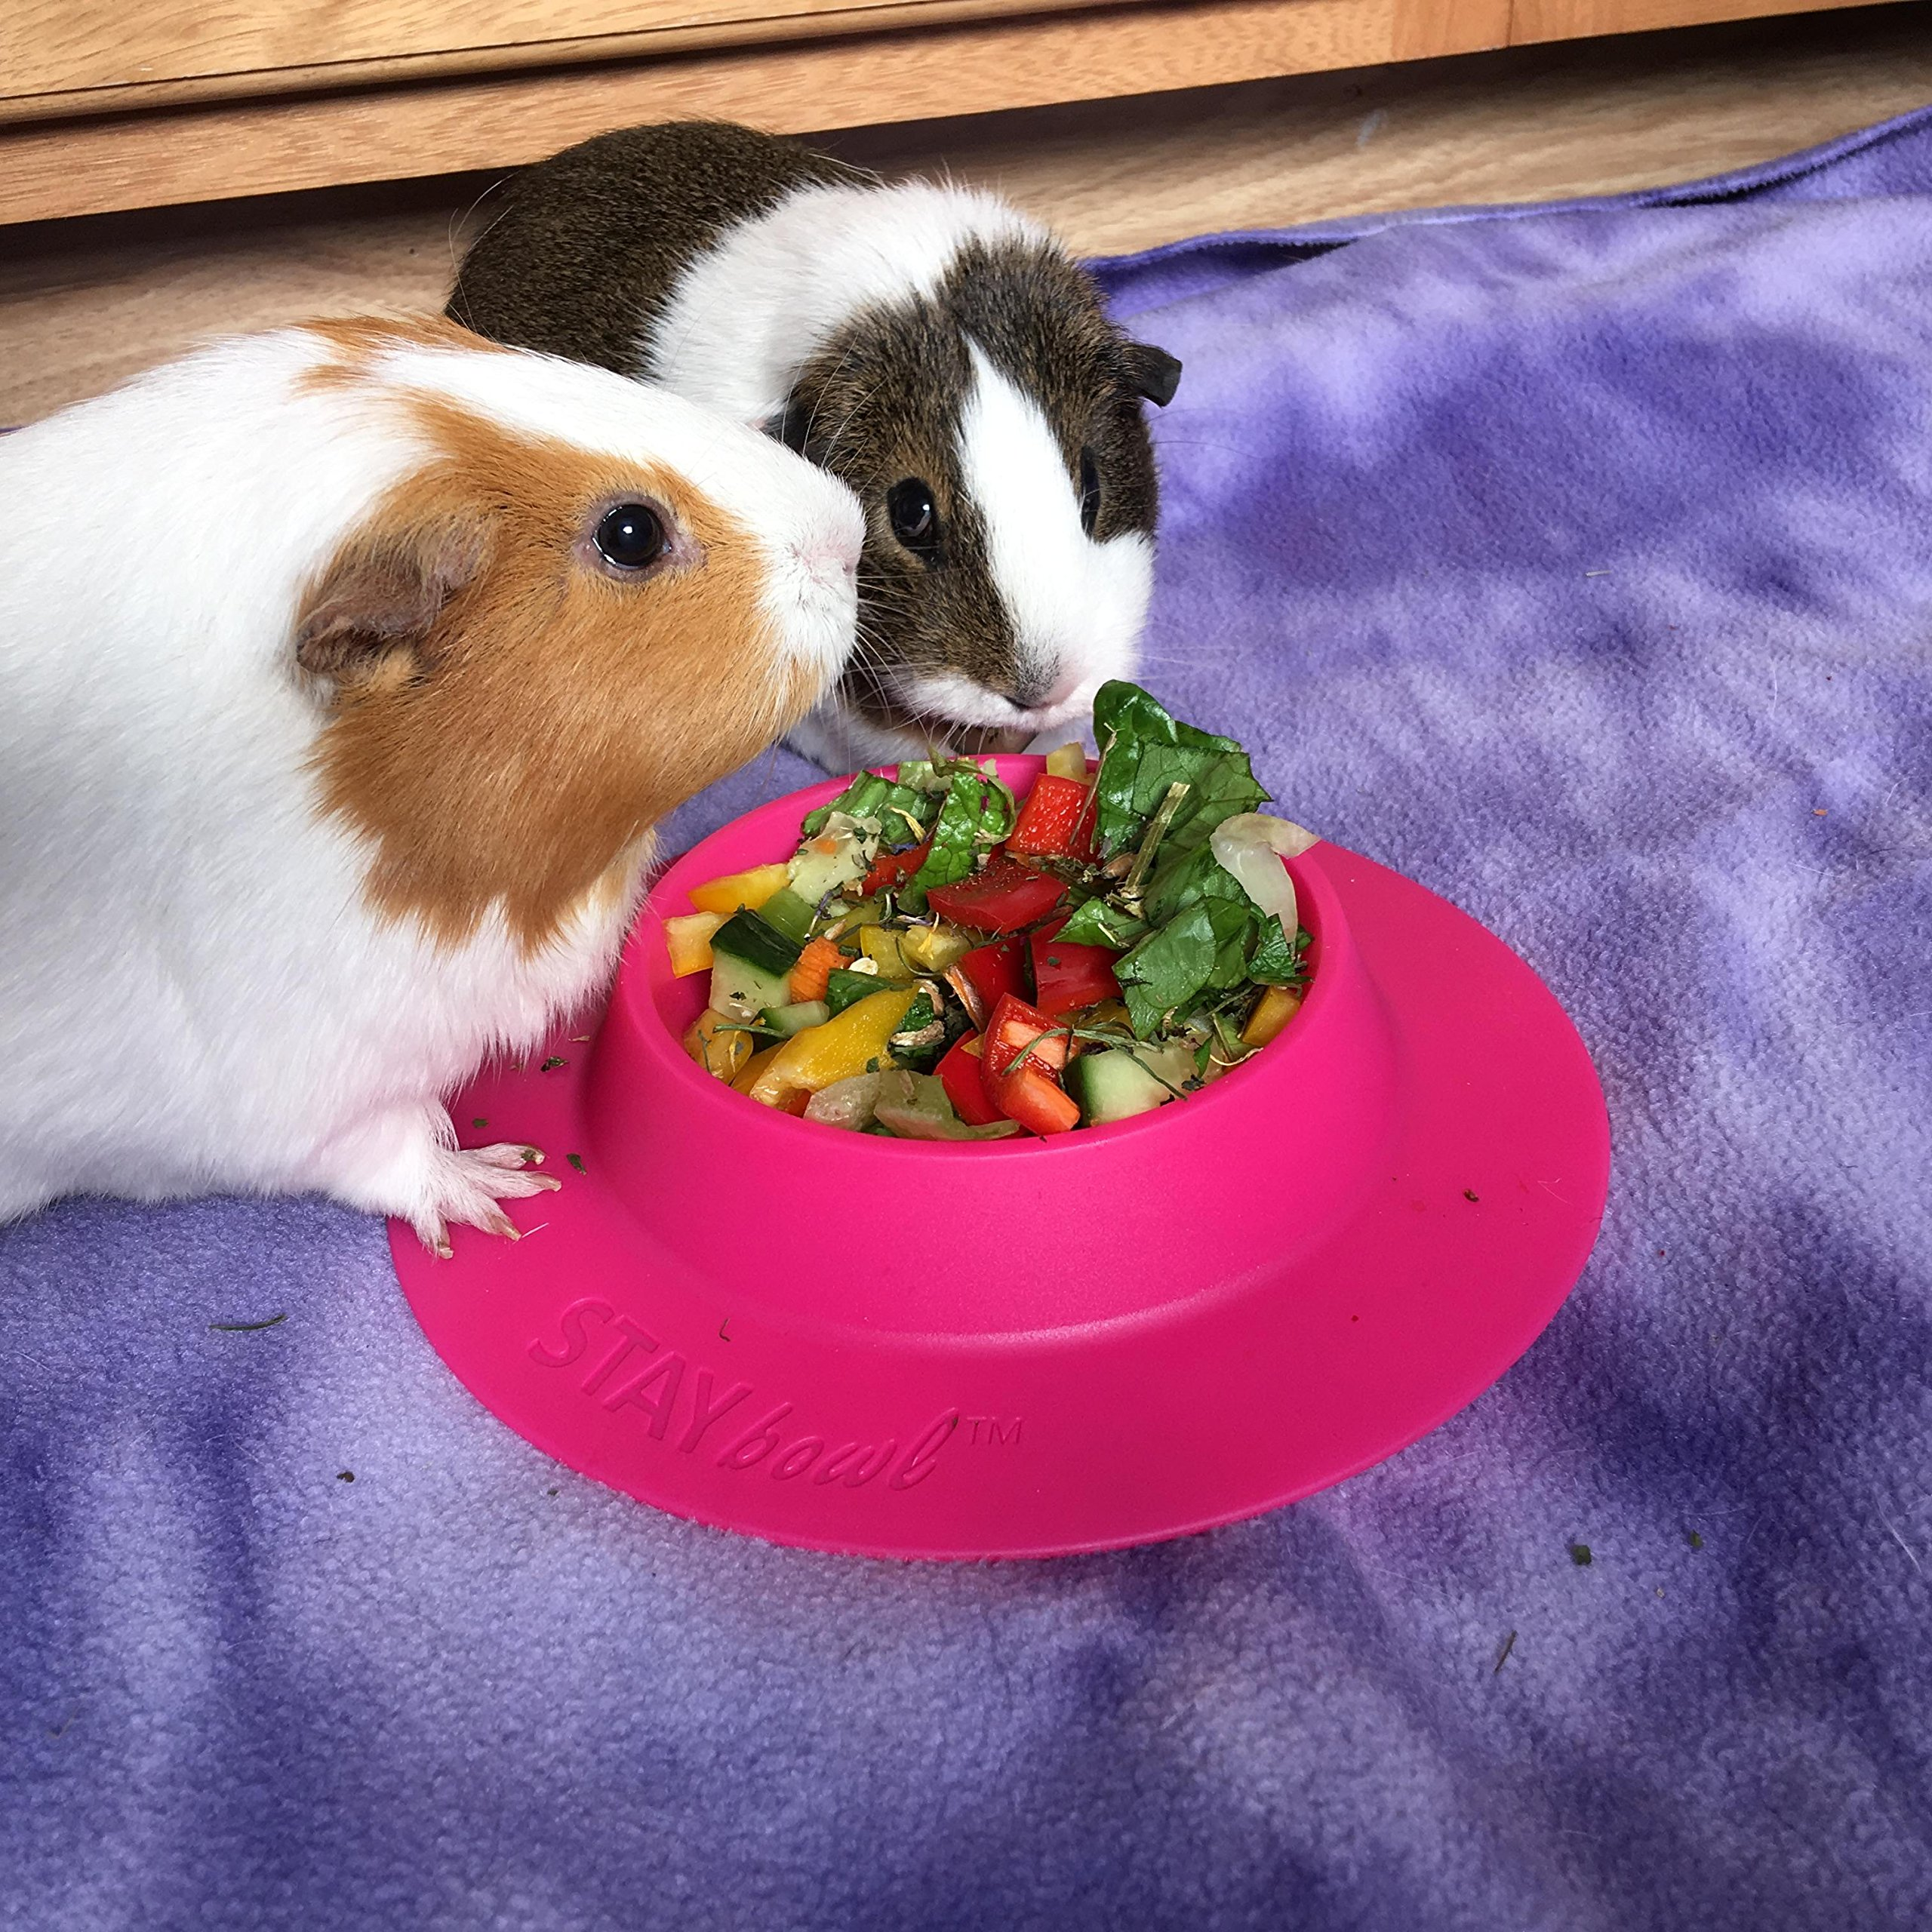 STAYbowl Tip-Proof Bowl for Guinea Pigs and Other Small Pets - Fuchsia (Pink) - Large 3/4 Cup Size New by STAYbowl